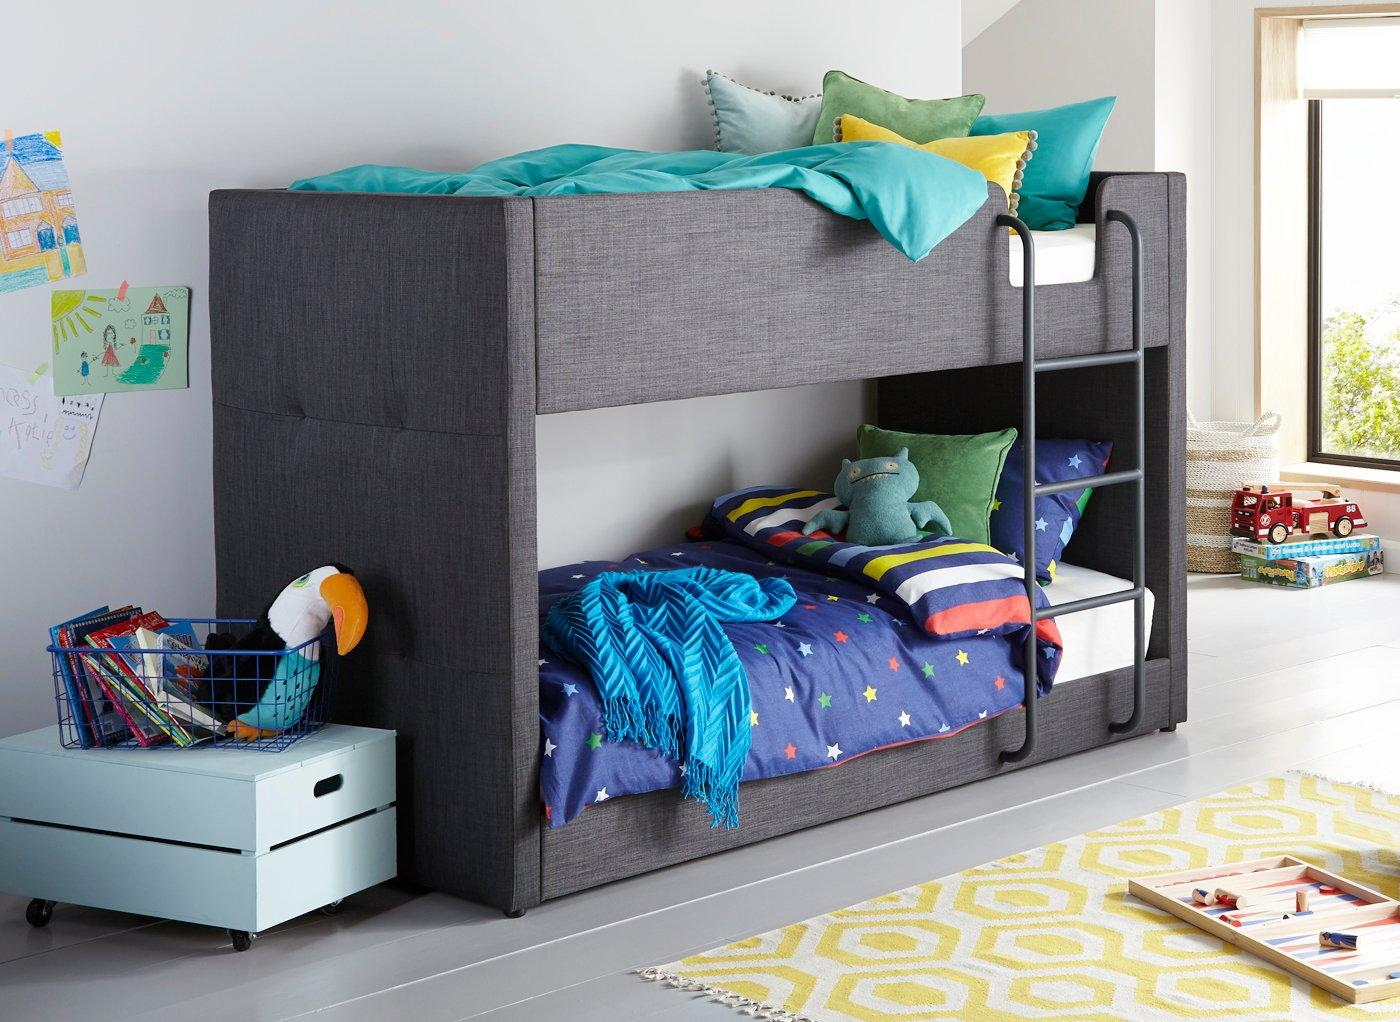 Bunk Beds Superb Range Of Kids Bunk Beds At Great Prices